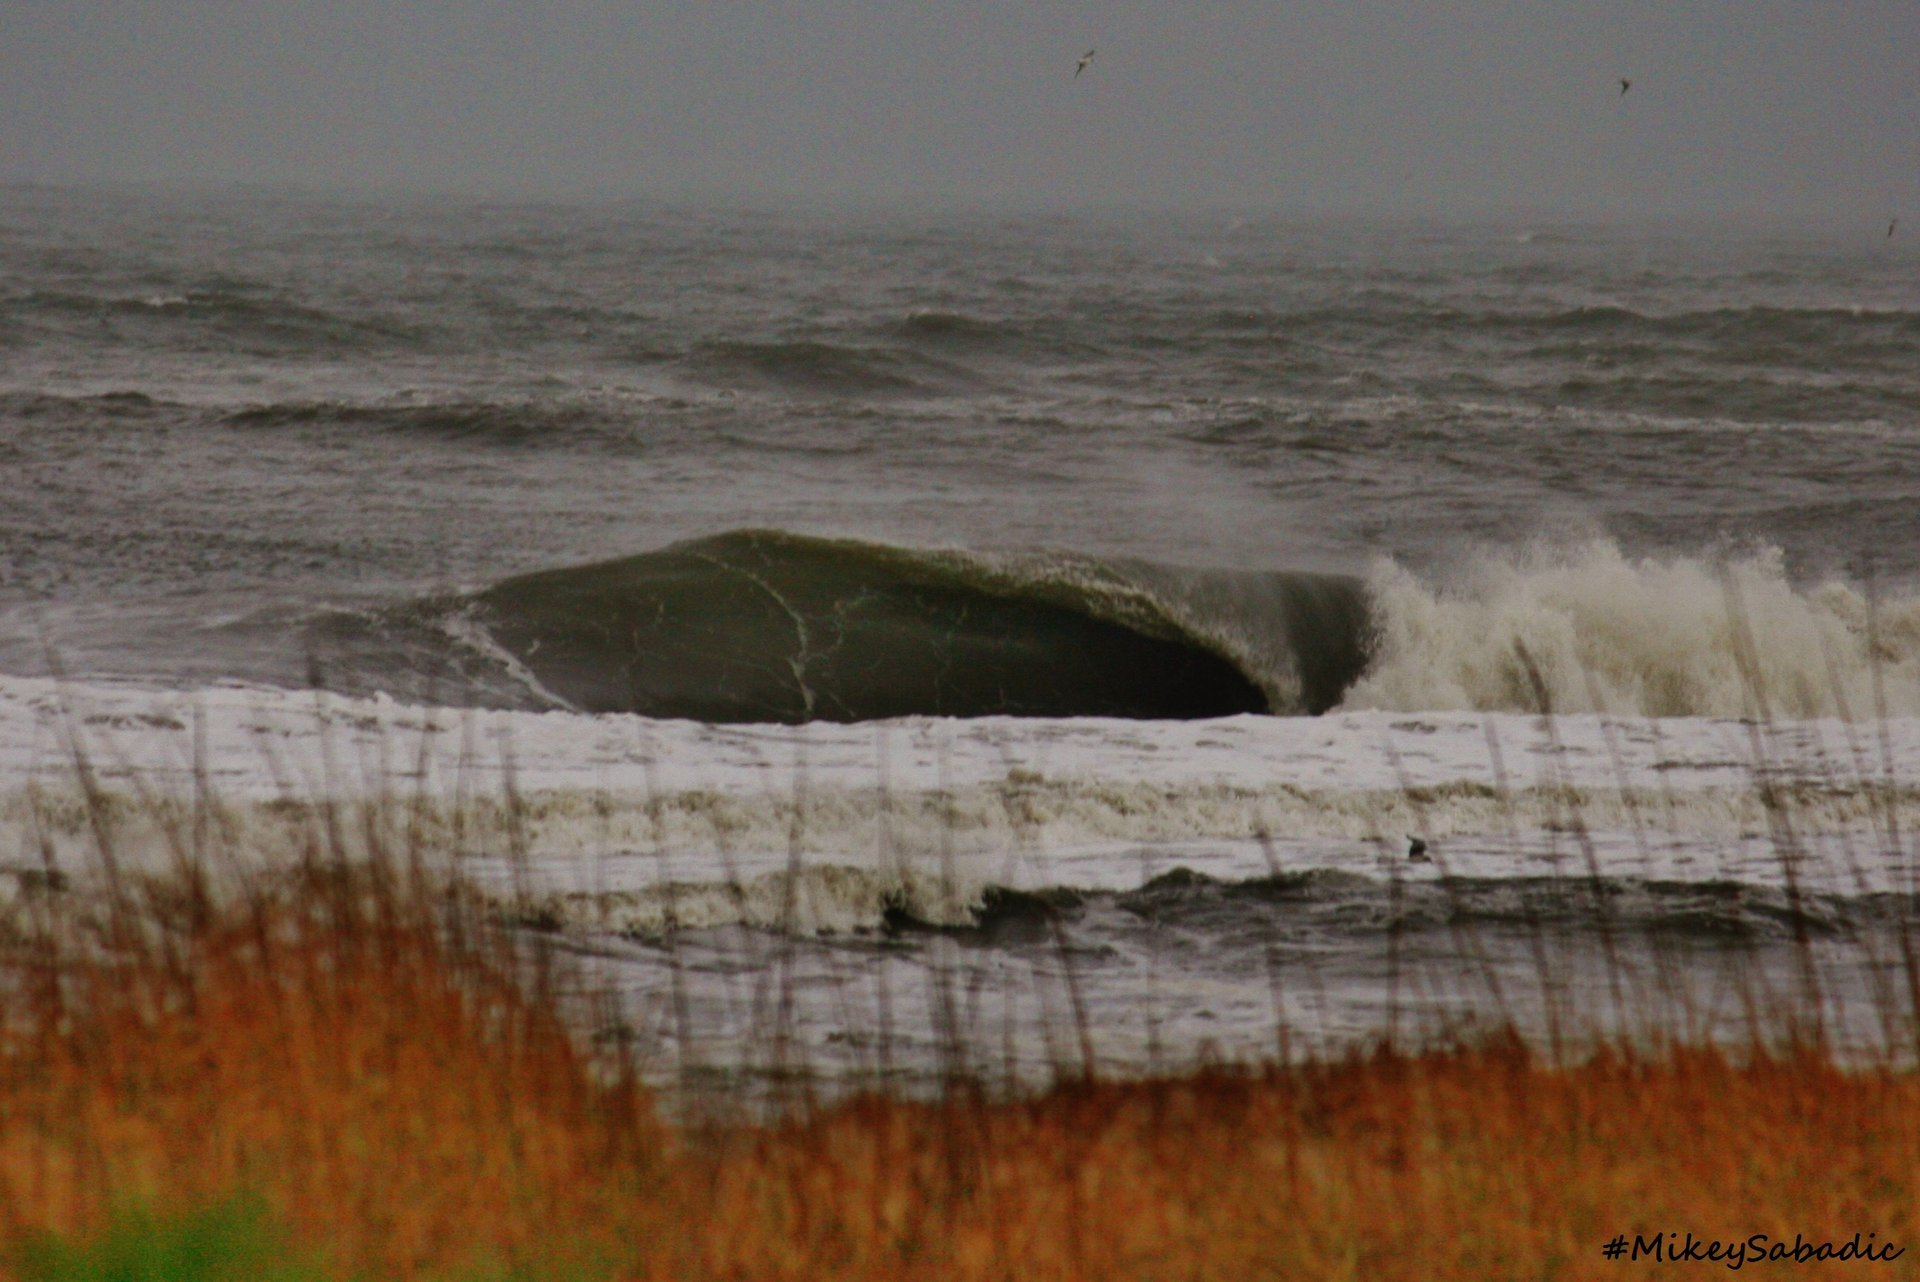 mikeysabadic's photo of Cape Hatteras